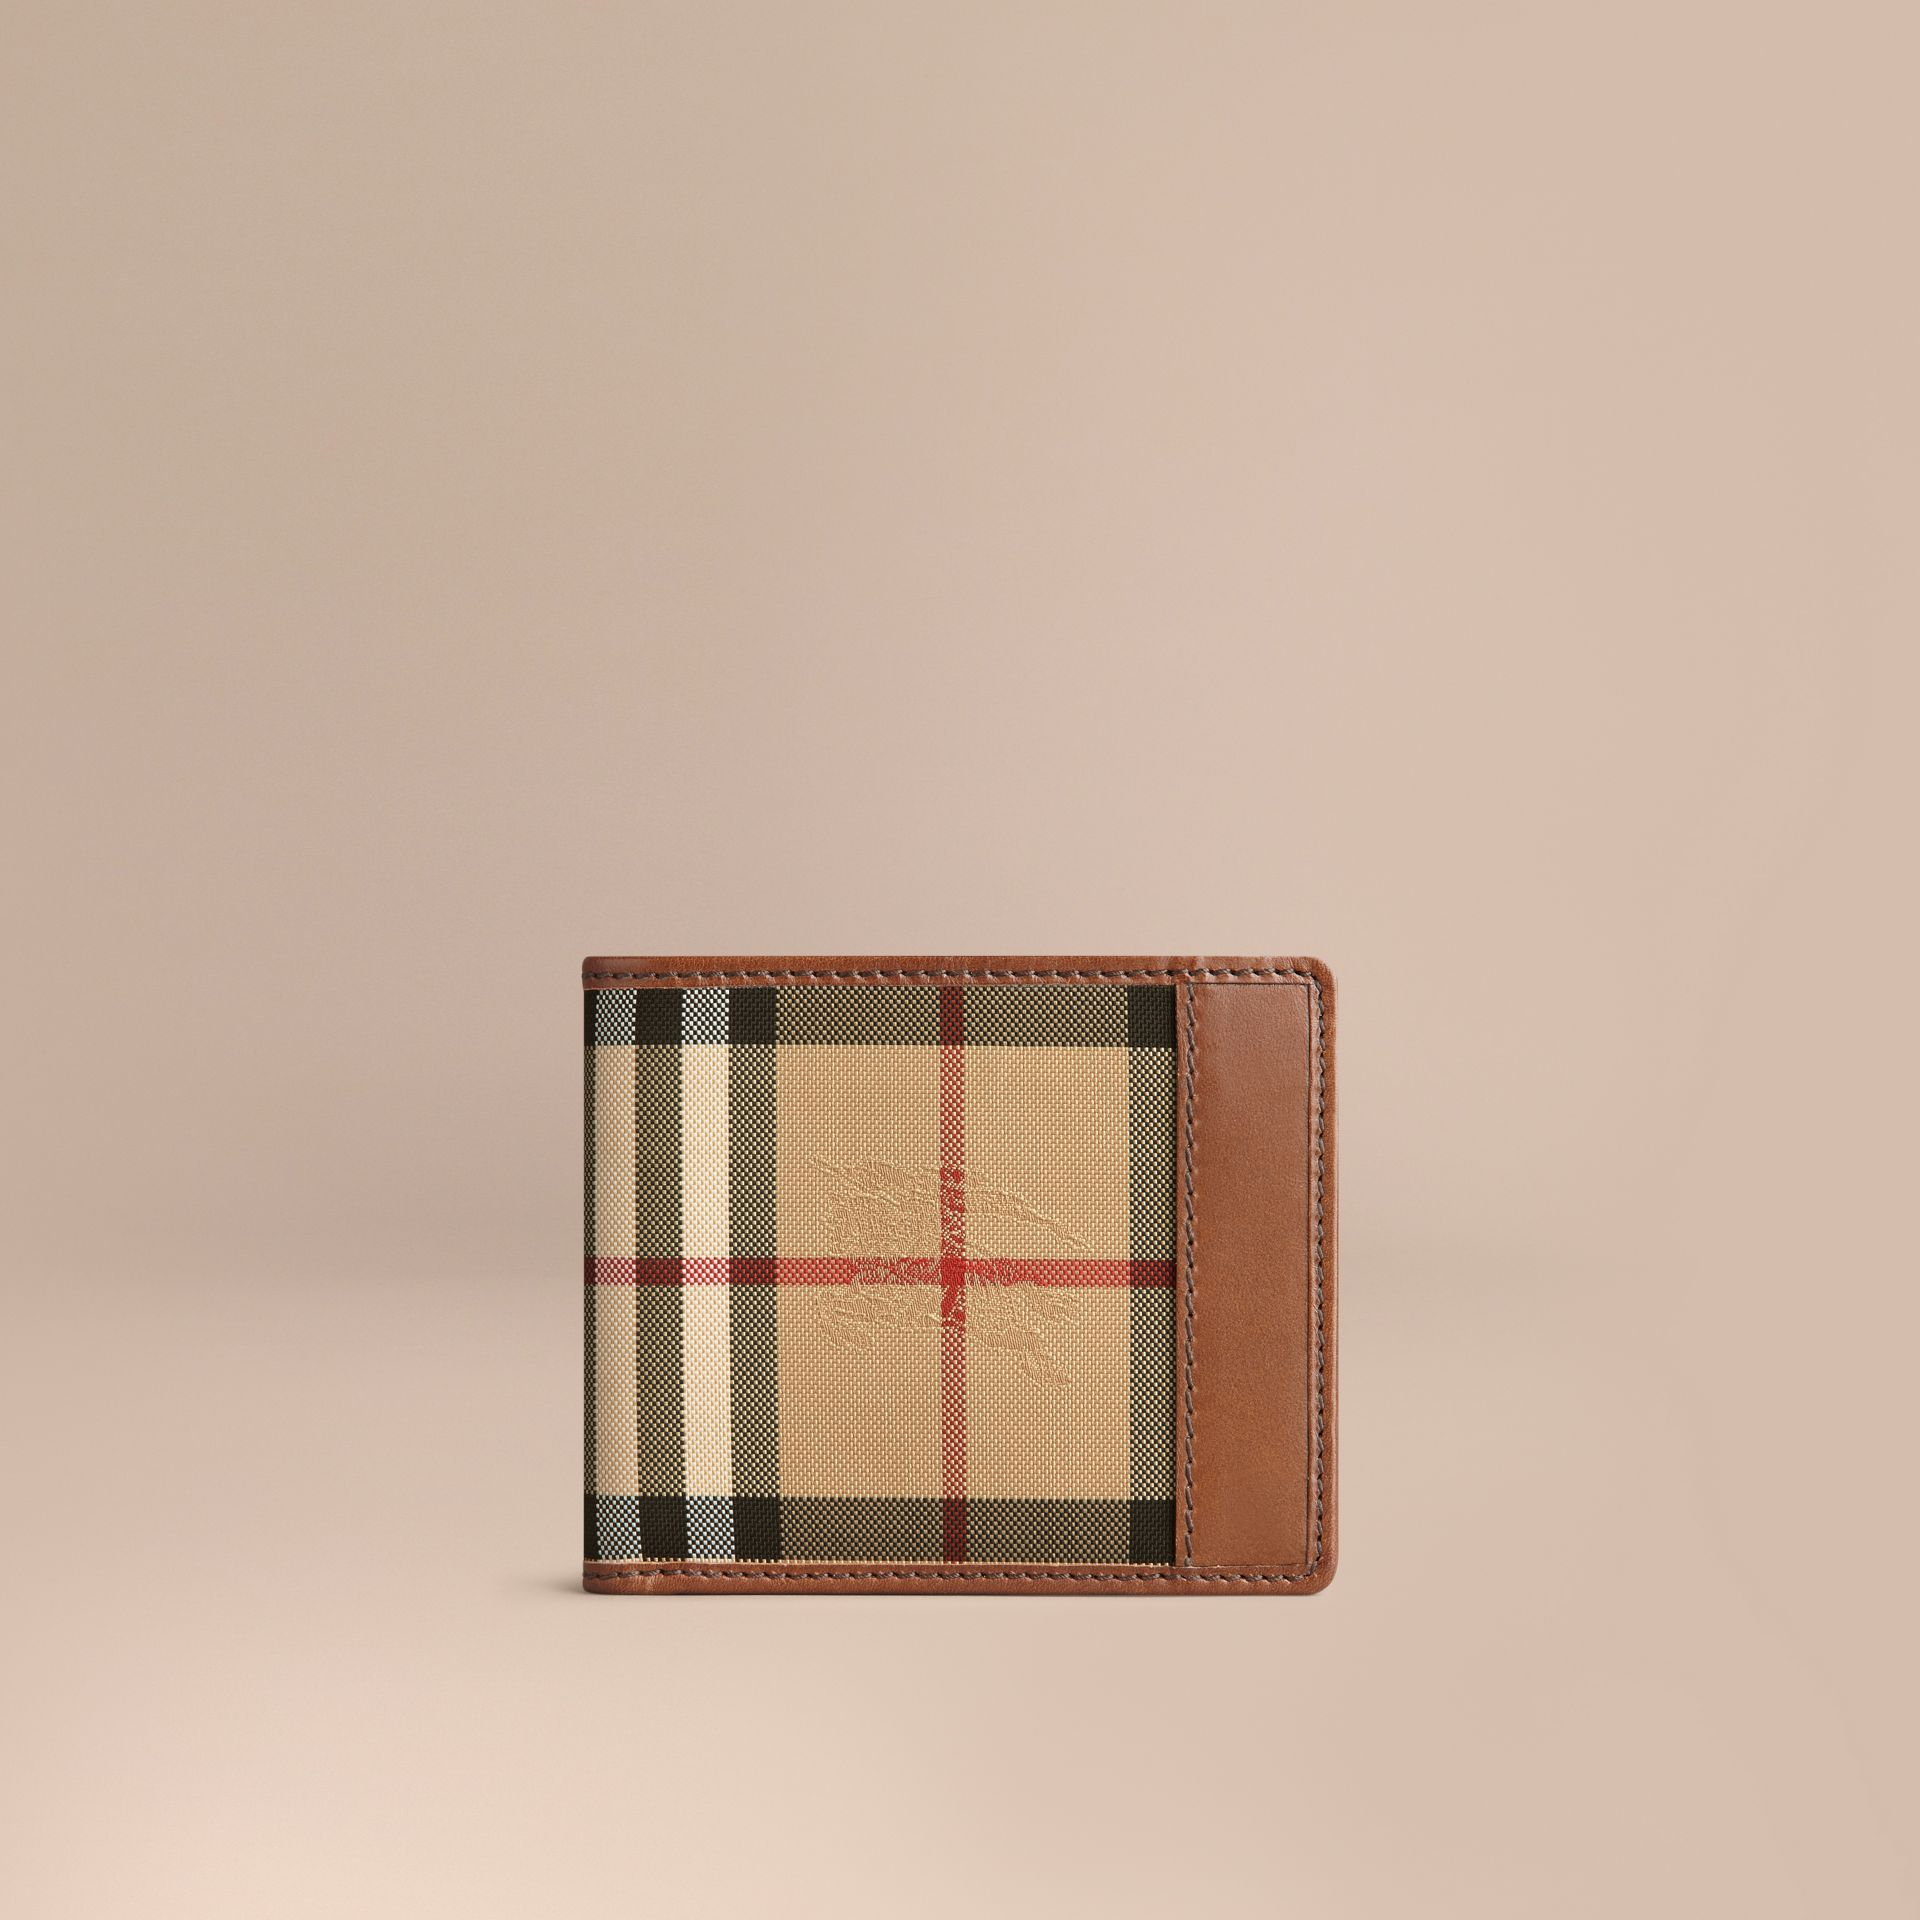 Horseferry Check ID Wallet in Tan - Men | Burberry Canada - gallery image 1